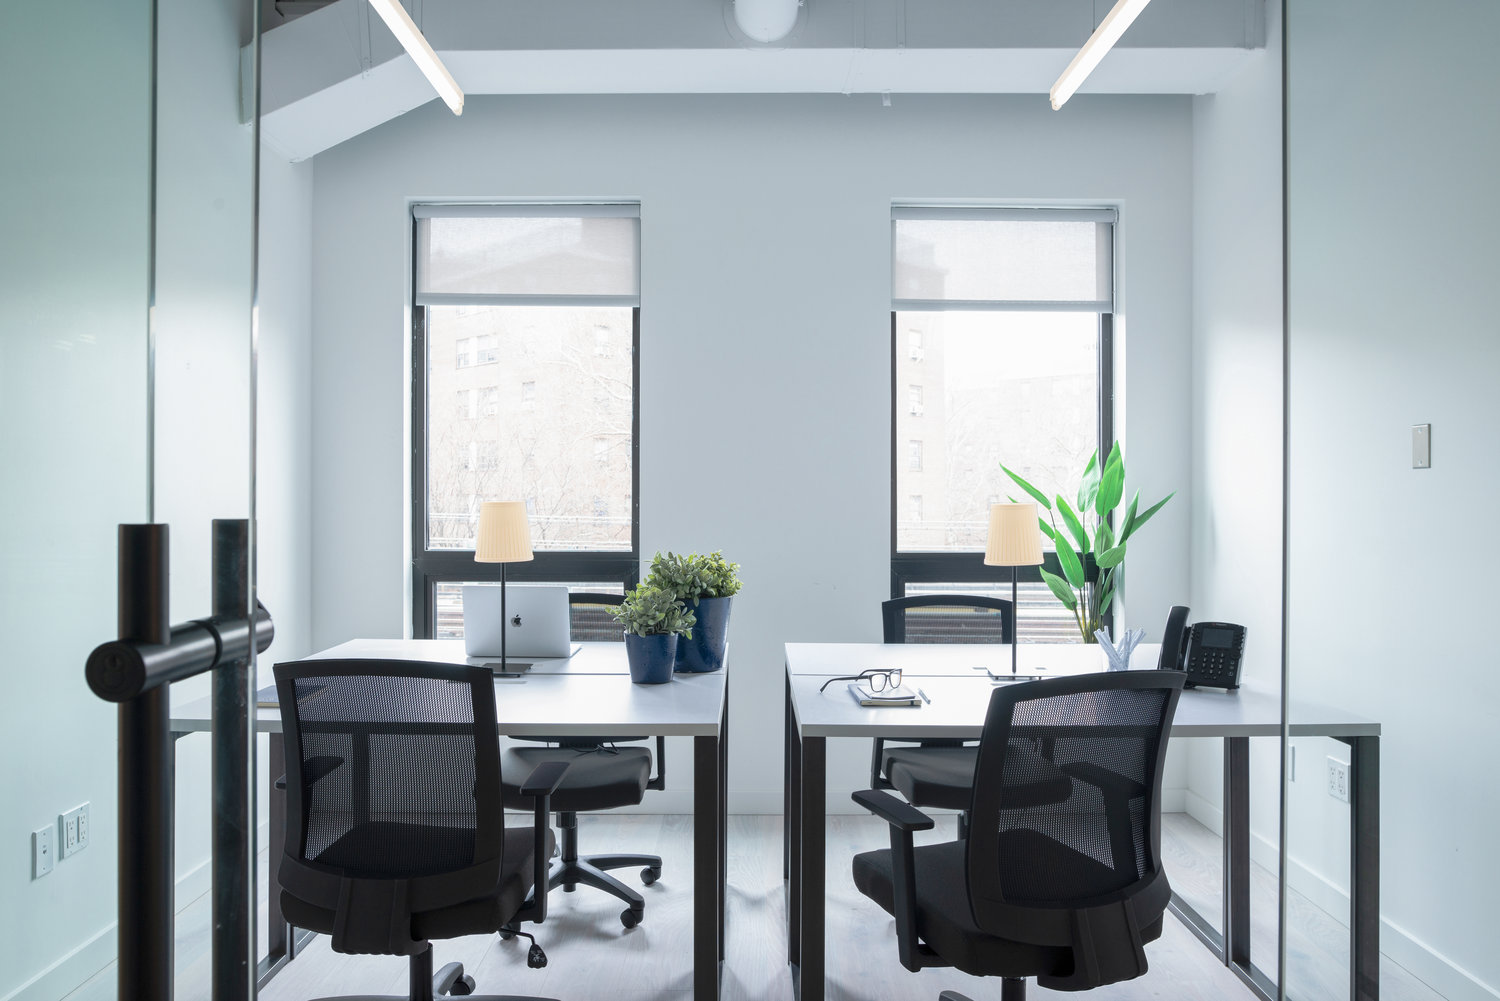 small clean and clutter-free working environment with desks and chairs